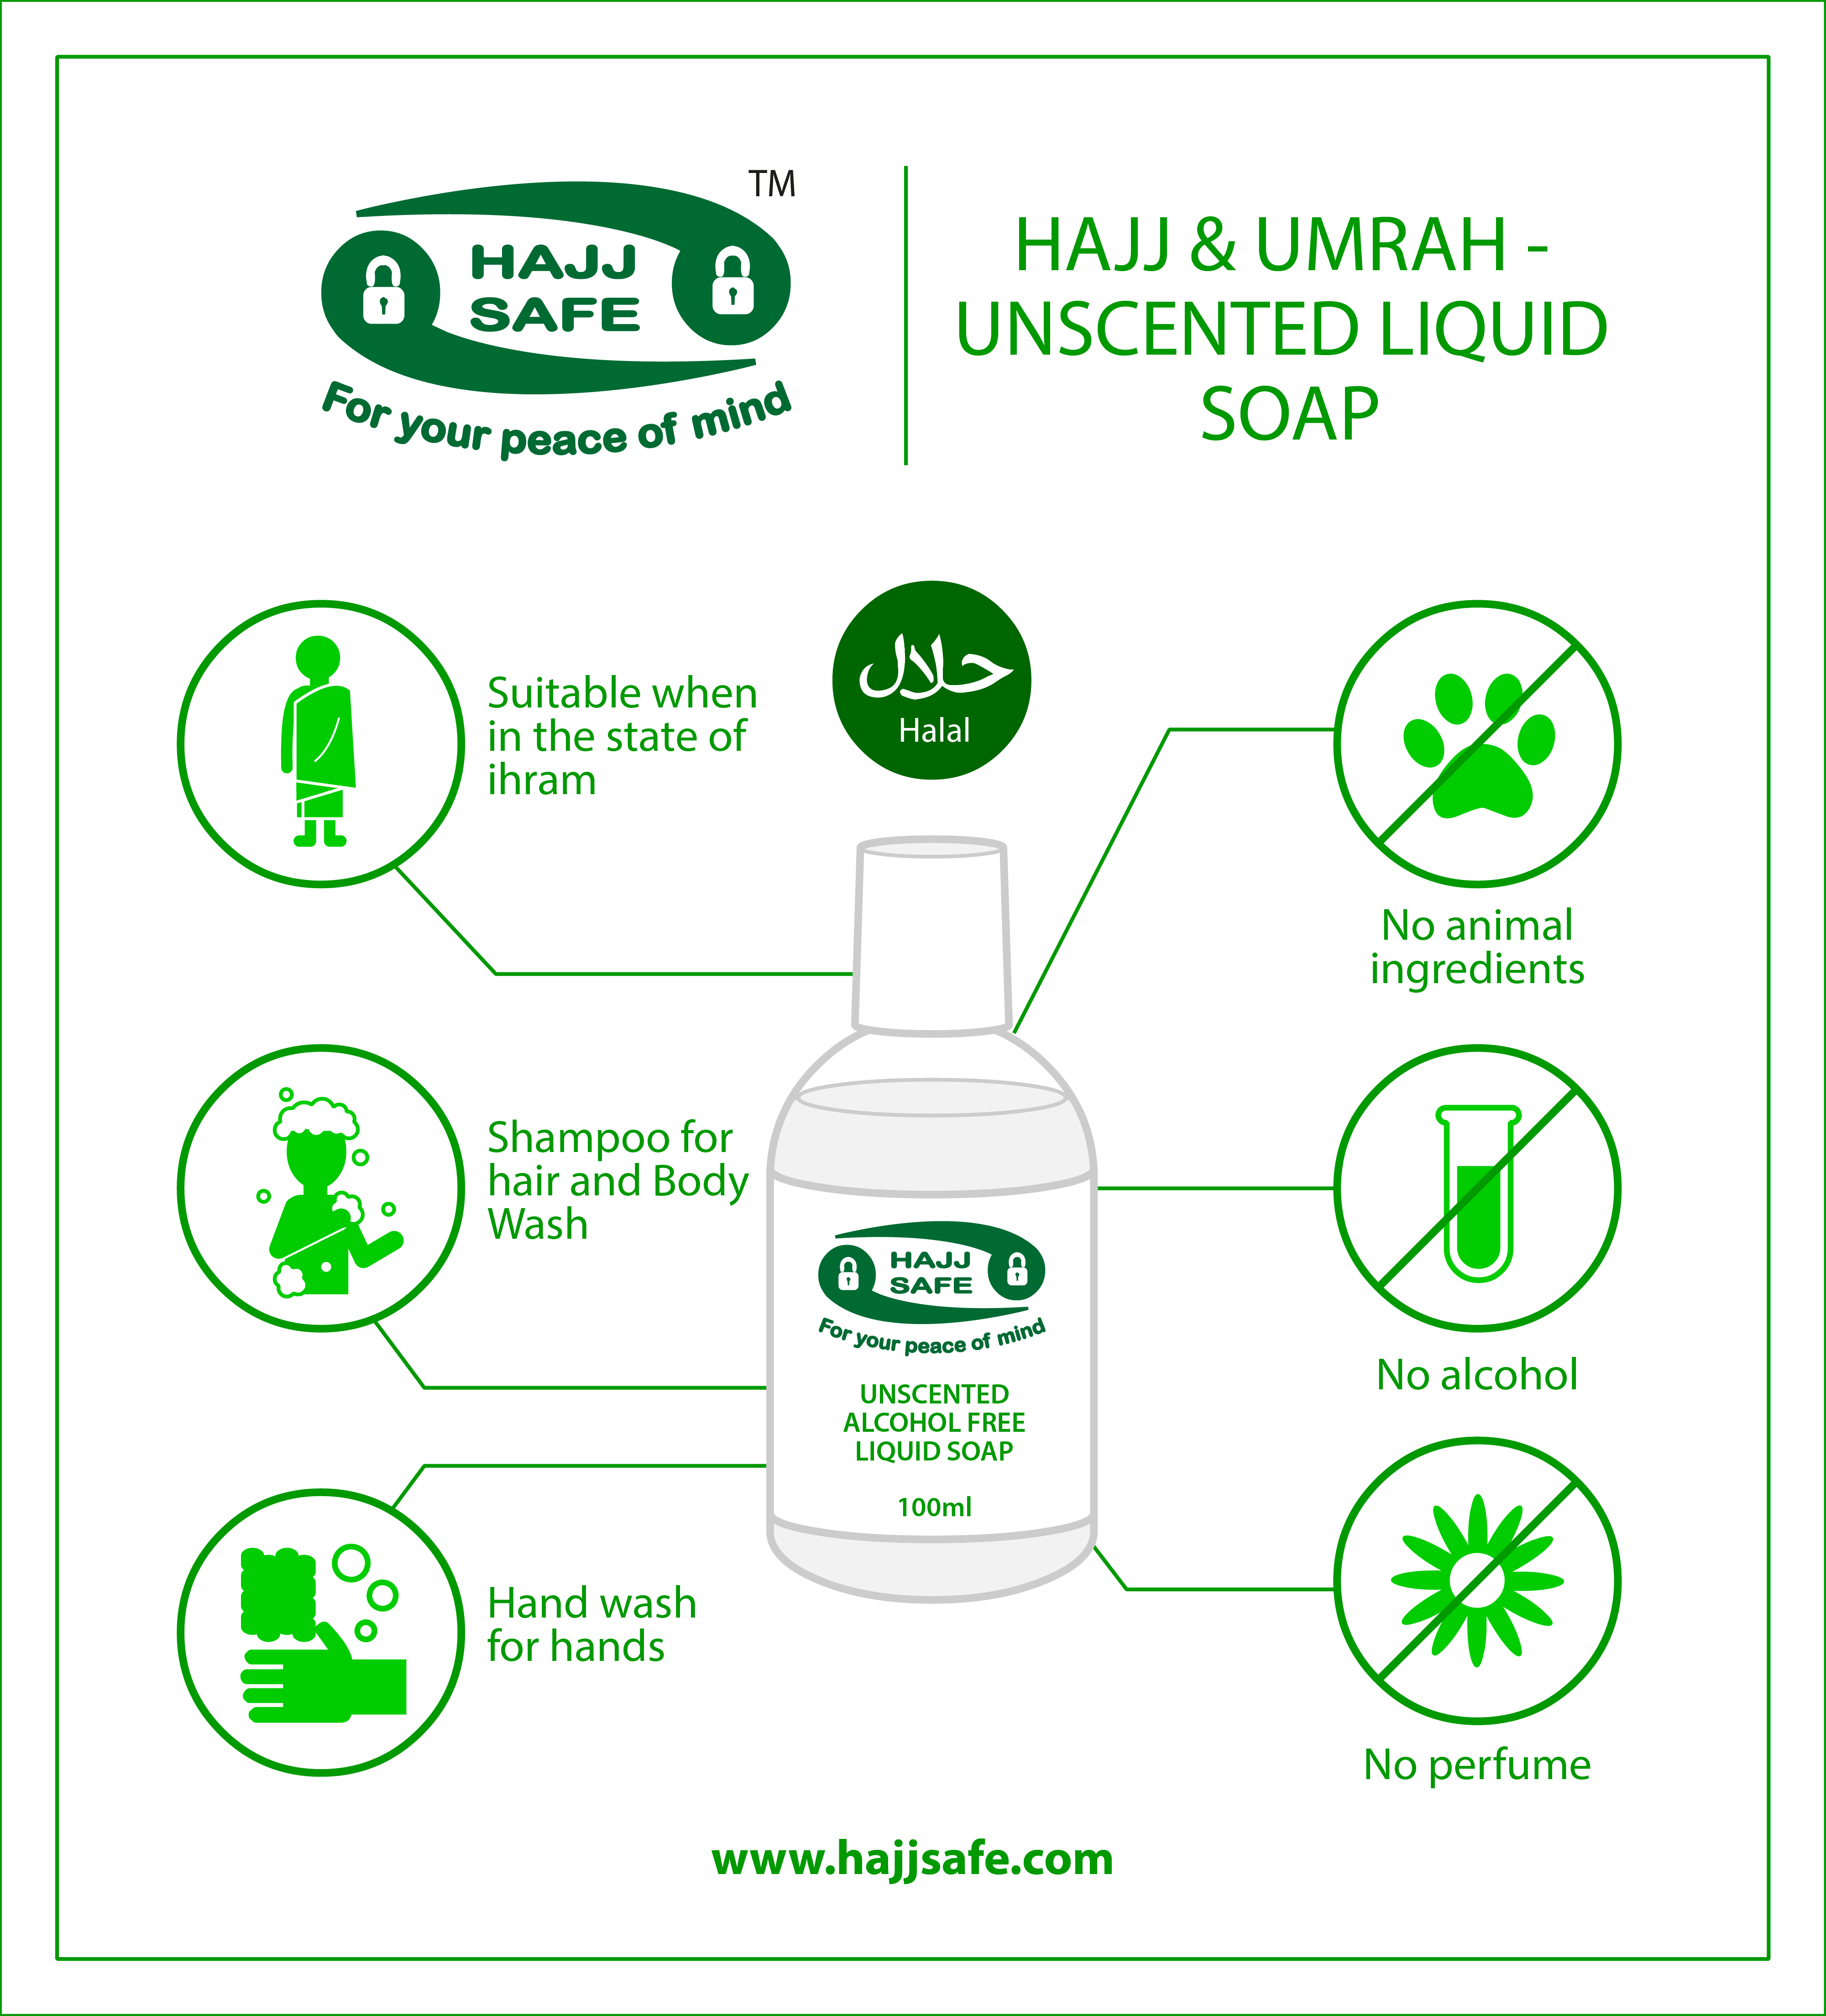 hajj-safe-unscented-soap-body-wash-and-shampoo.png